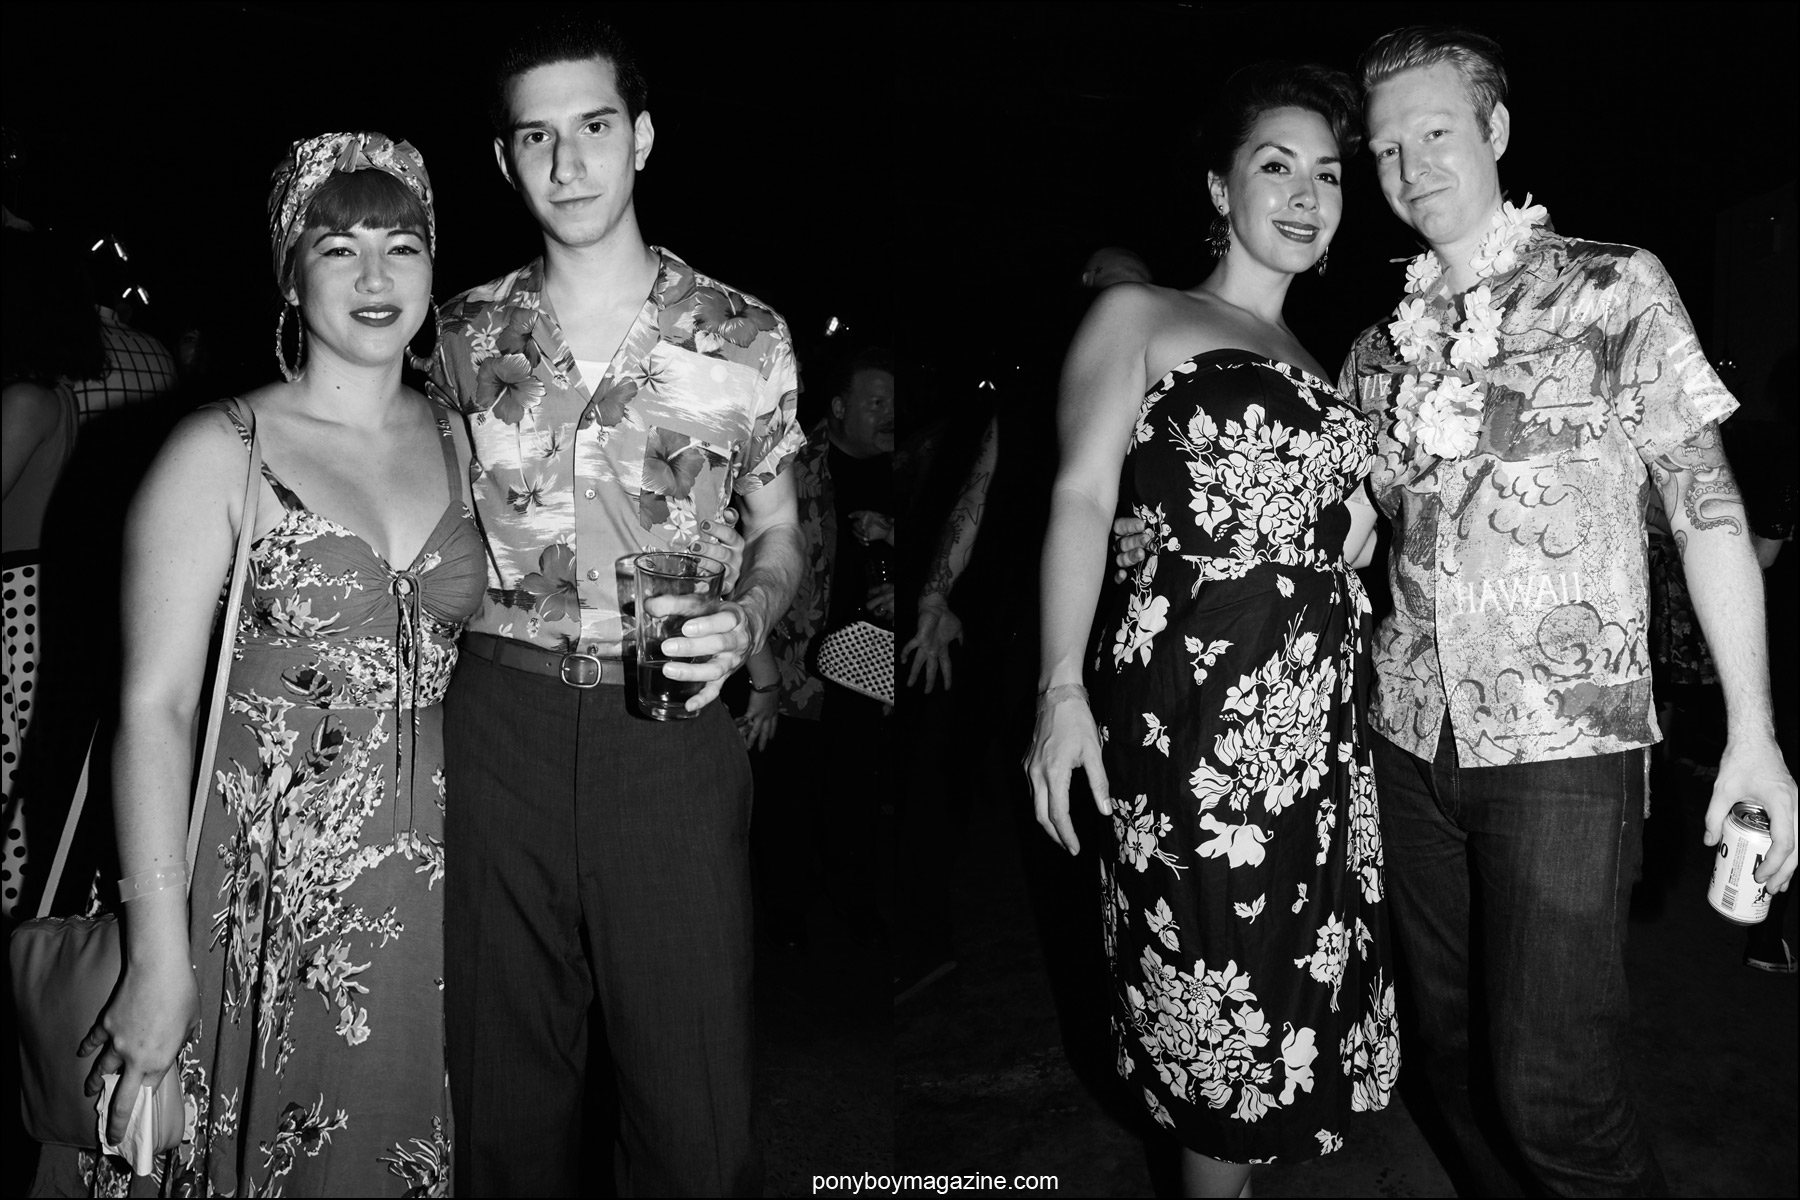 Rockabilly couples photographed in Hawaiian clothing at Hula Rock Vol 2 weekender in New York City. Photographs by Alexander Thompson for Ponyboy magazine NY.